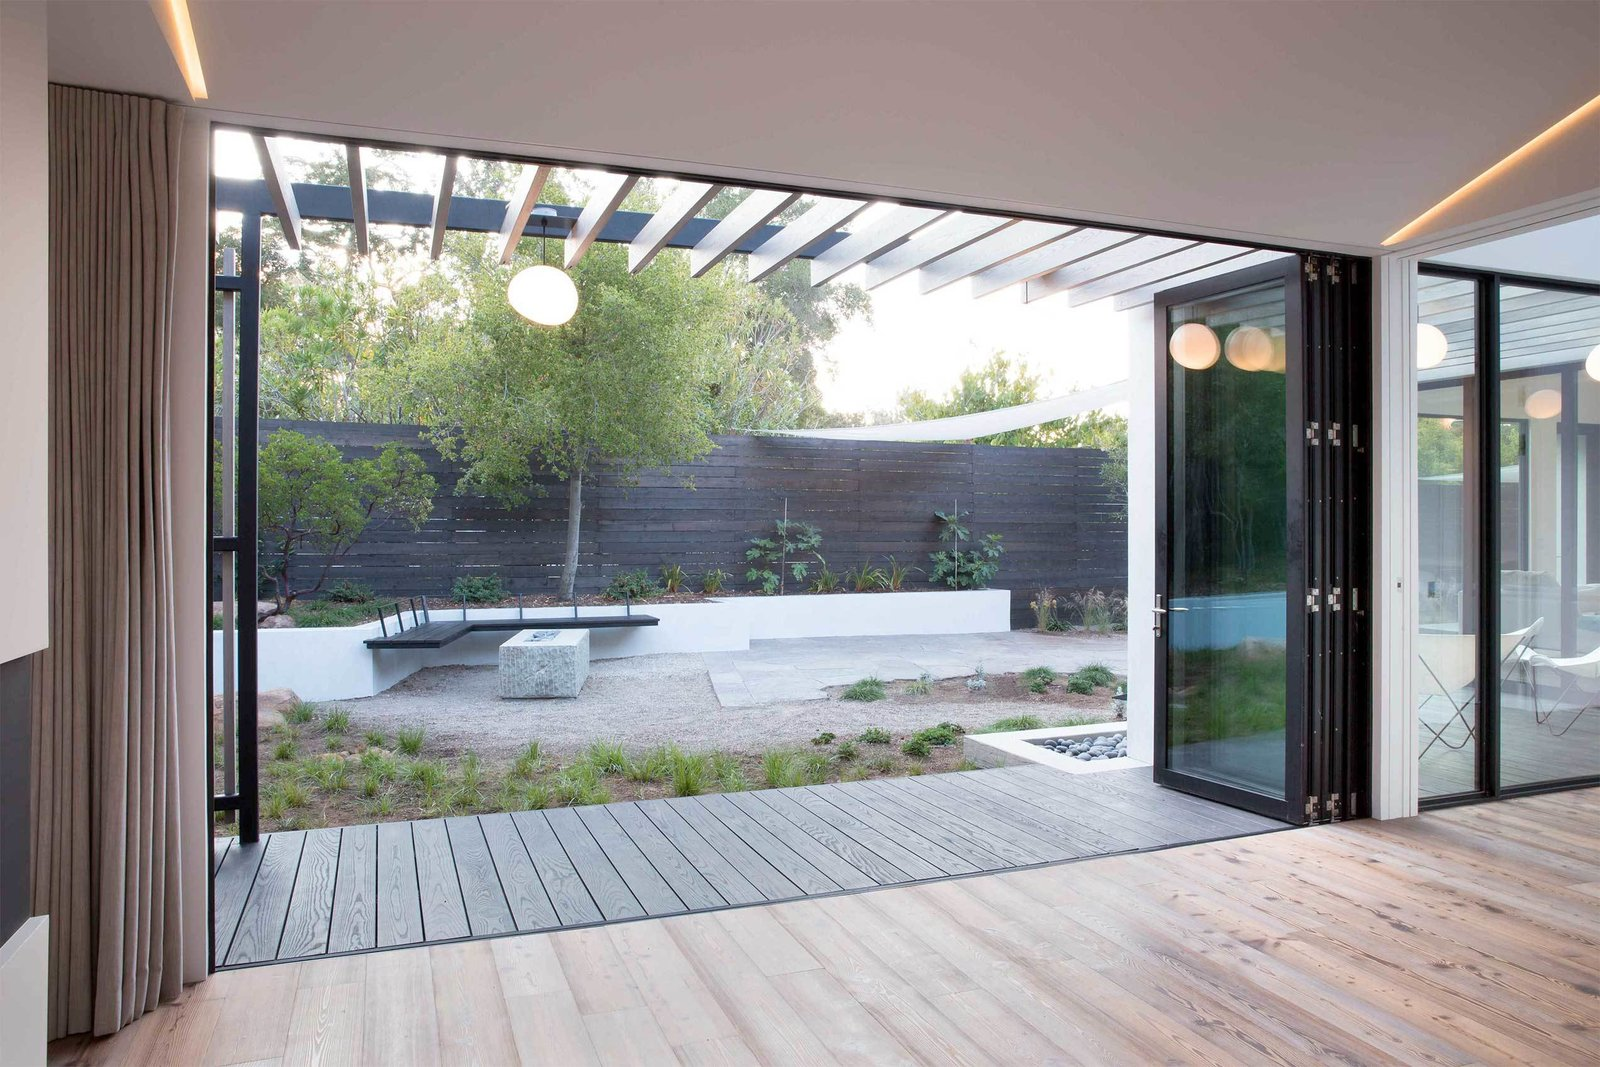 Photo 4 of 5 in Serenity Now by Western Window Systems - Dwell